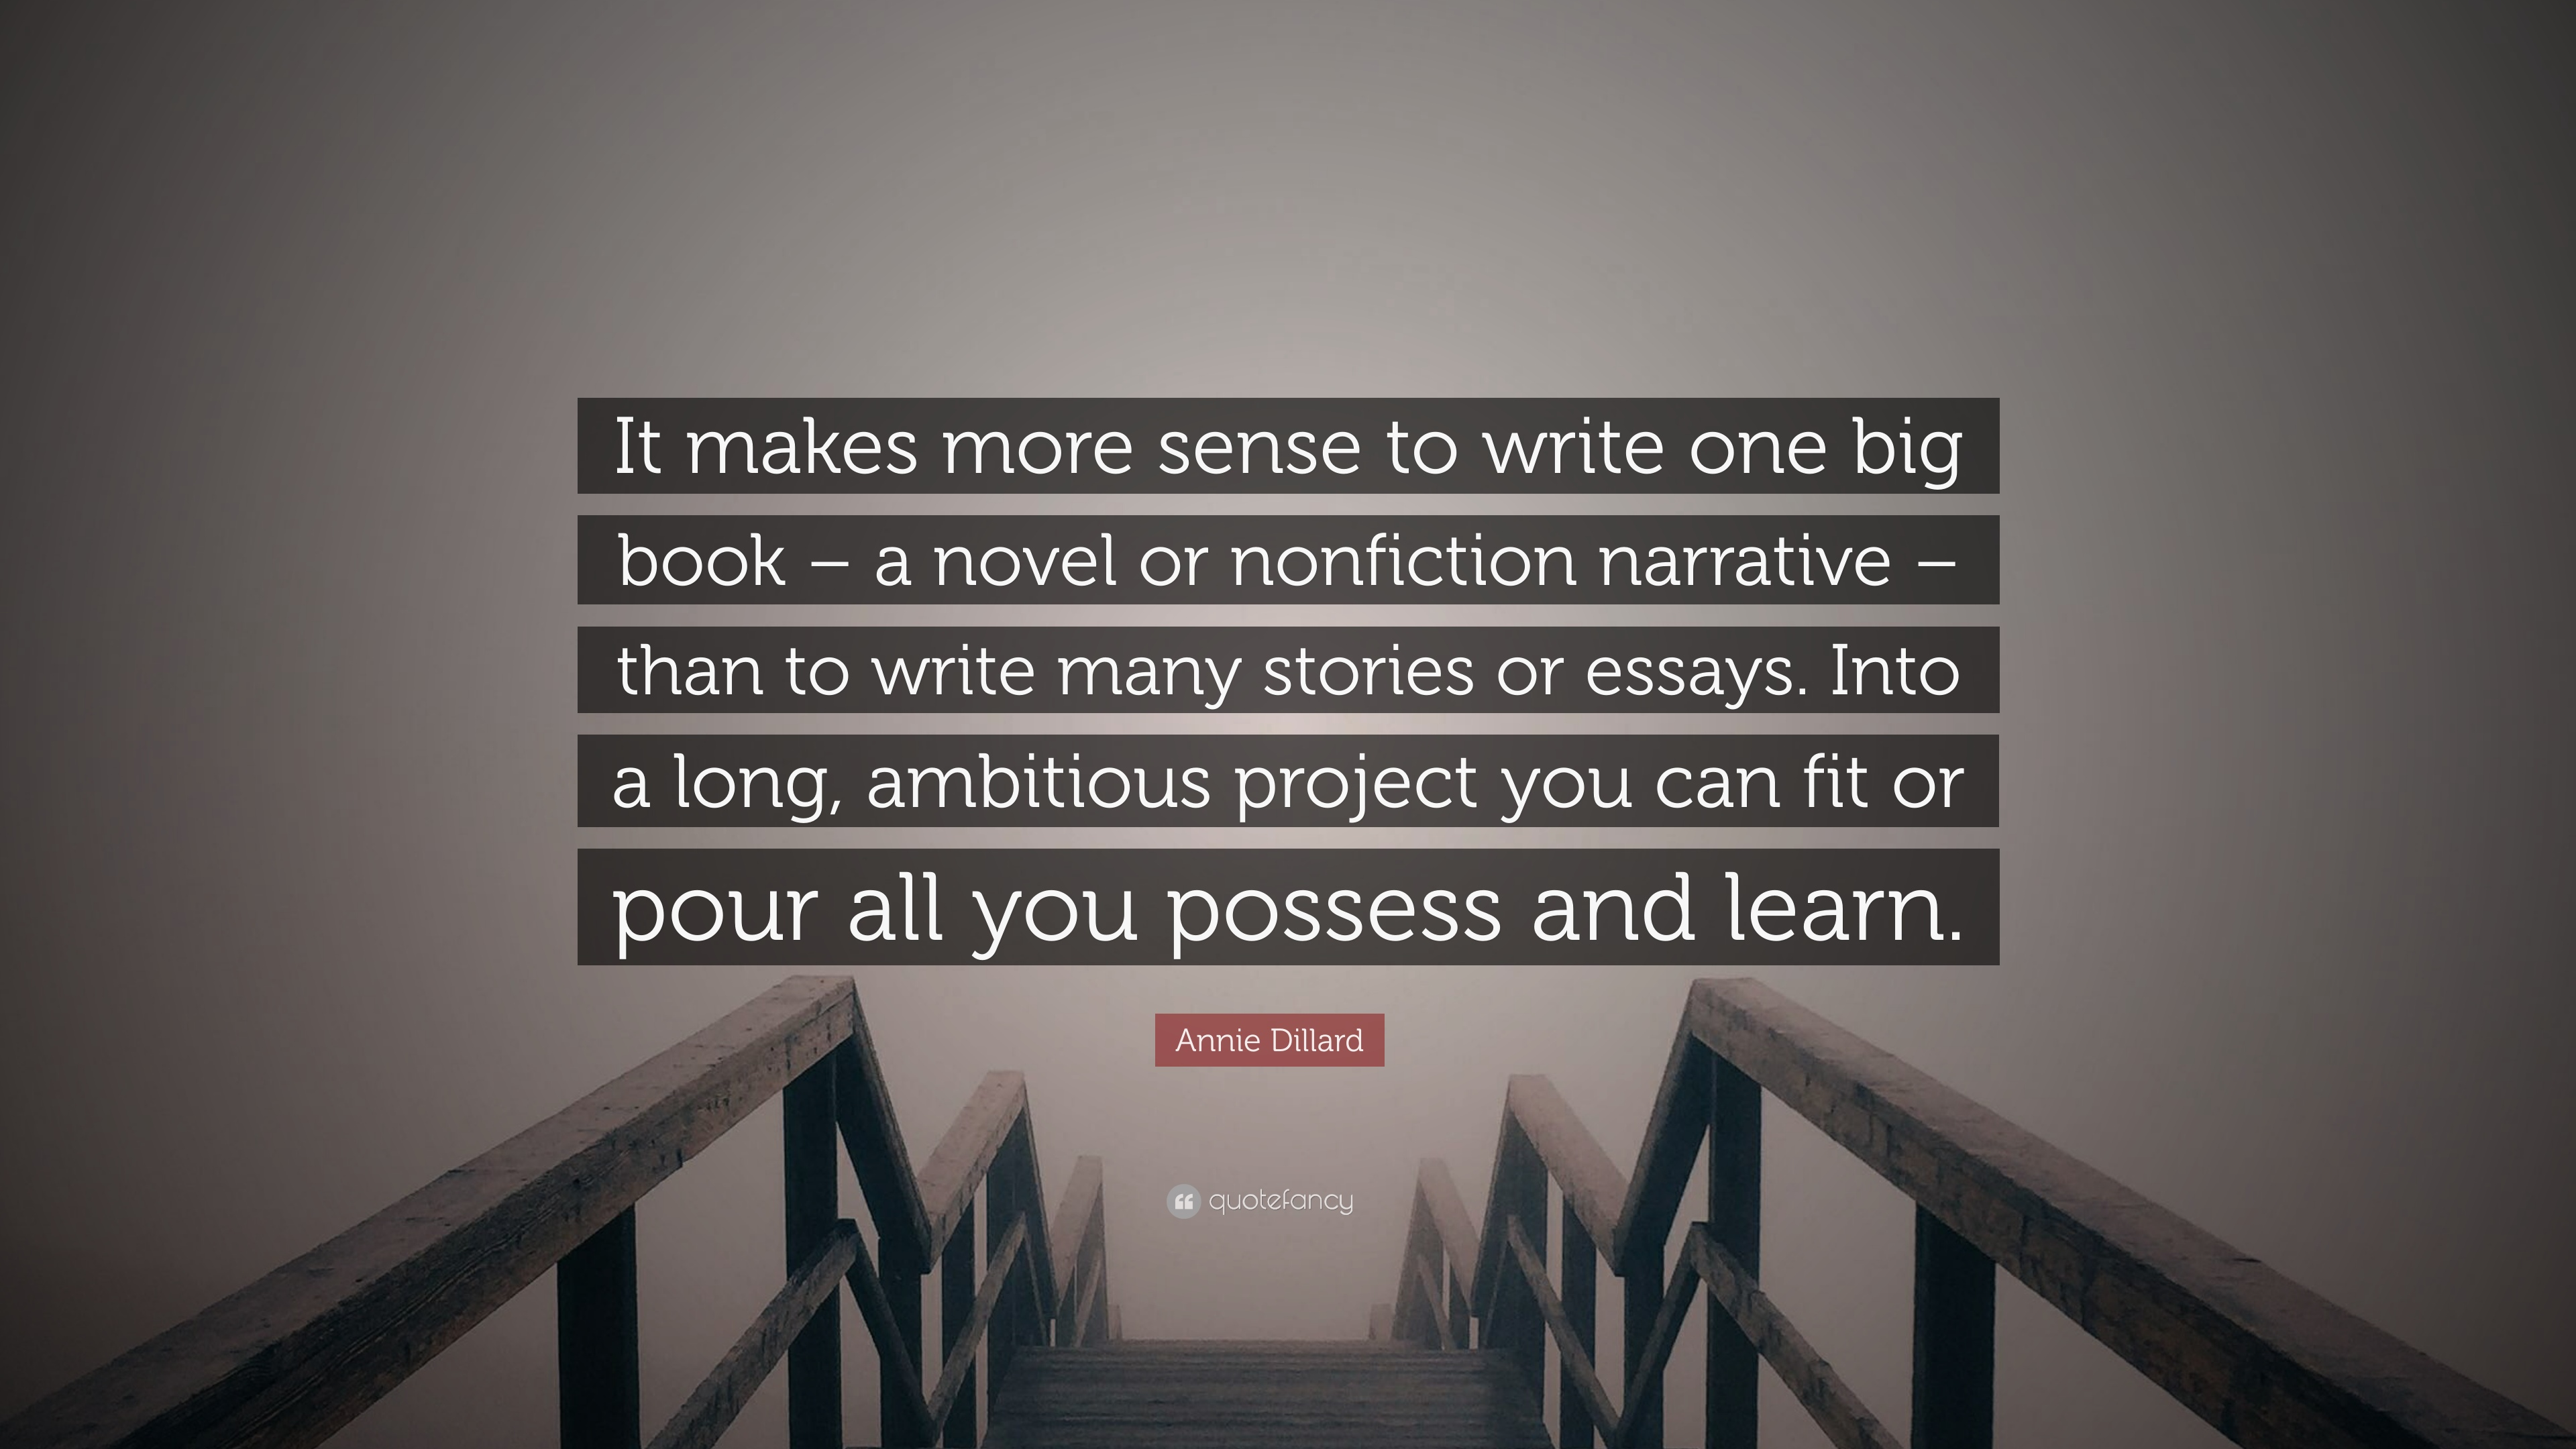 011 Annie Dillard Quote It Makes More Sense To Write One Big Book Essays Essay Stirring Stunt Pilot Pdf Full